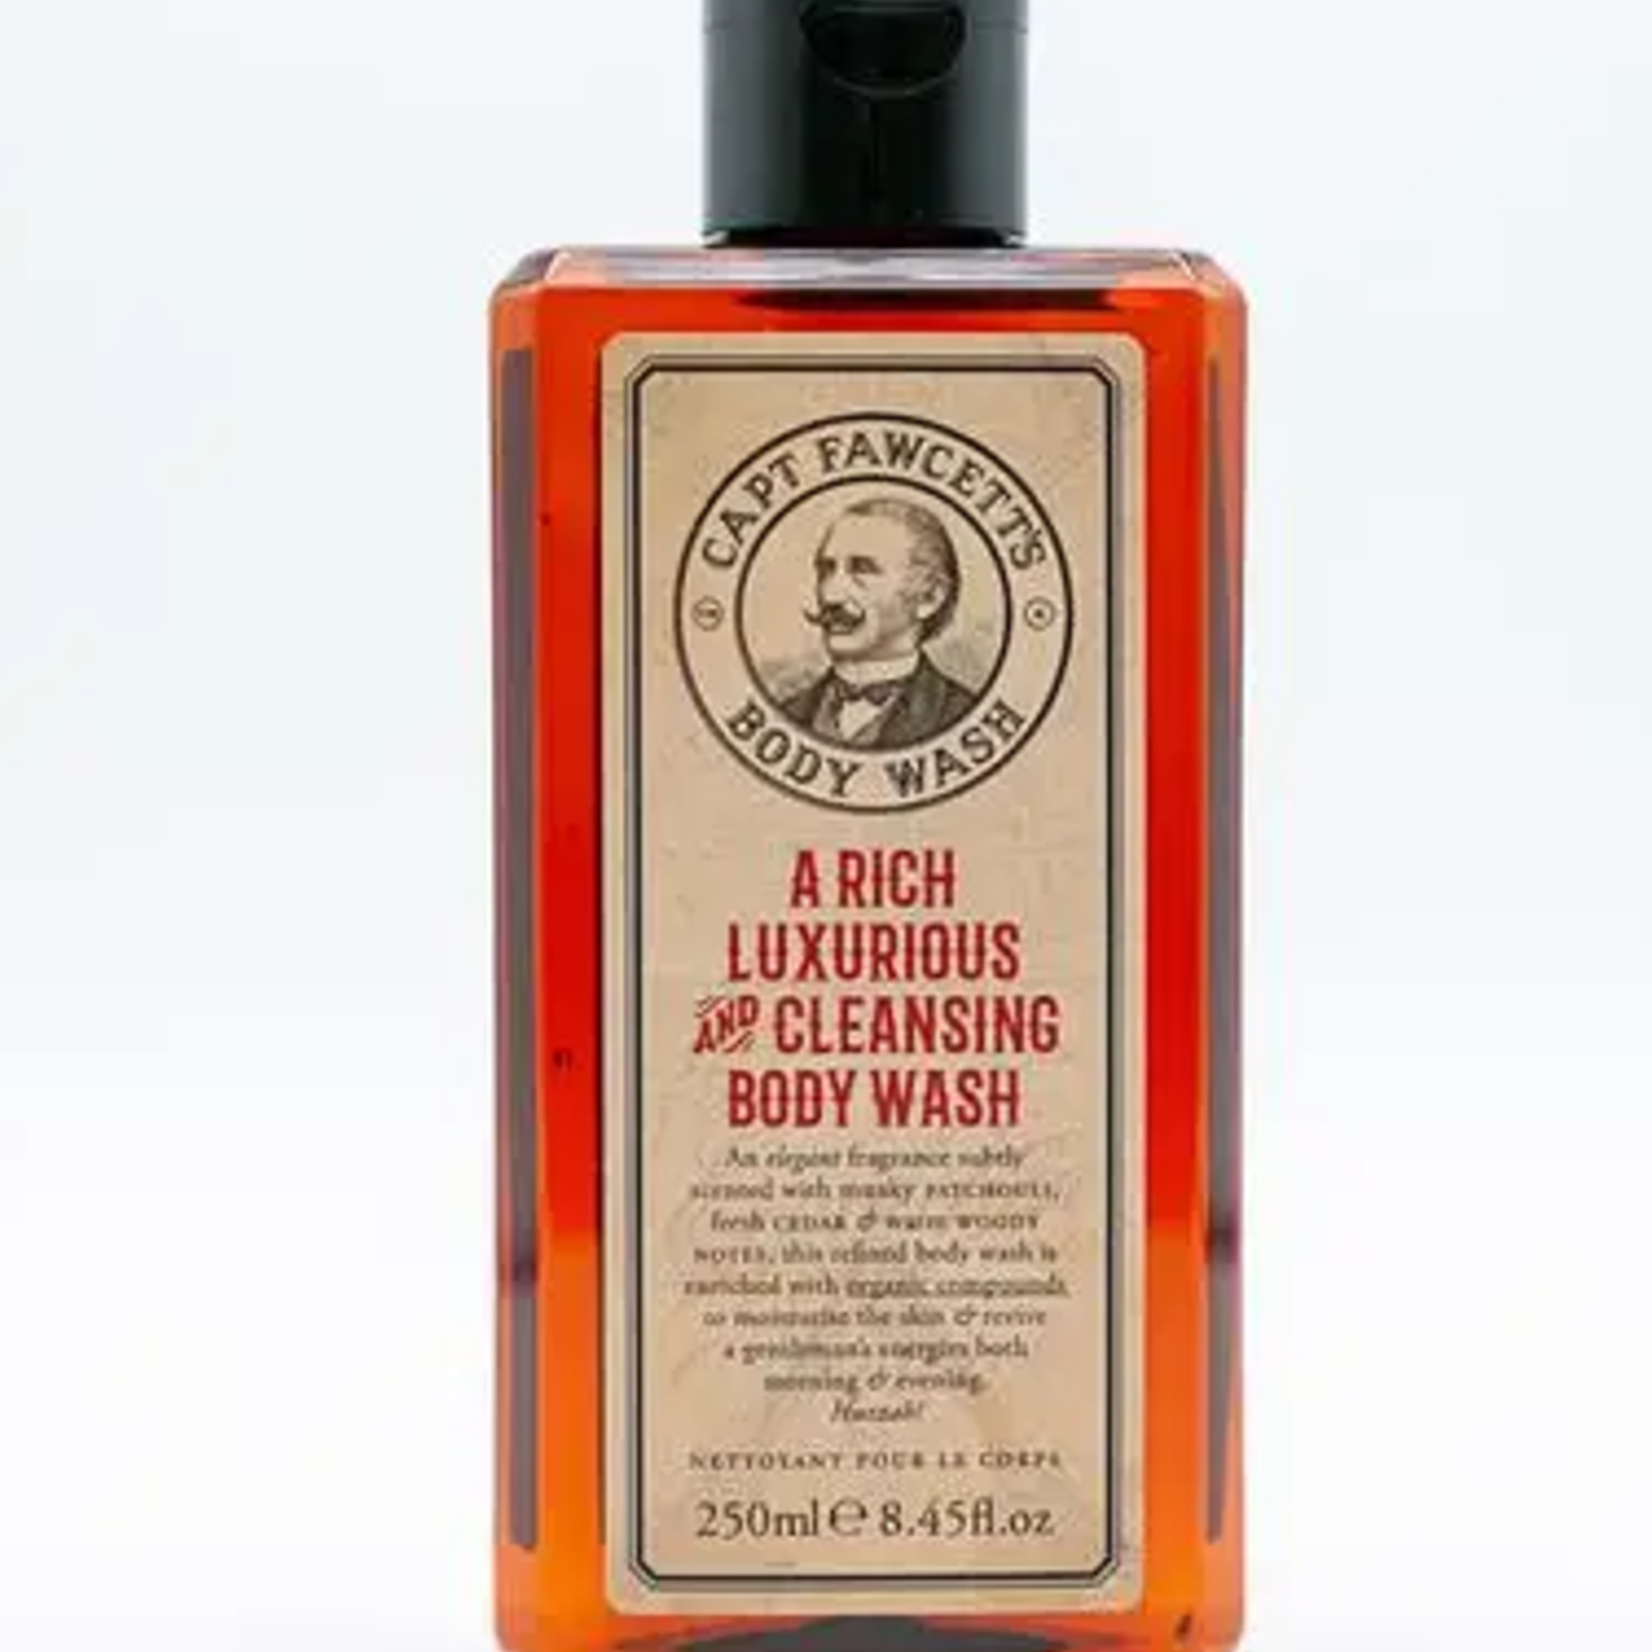 CAPTAIN FAWCETT A Rich Luxurious and Cleansing Body Wash